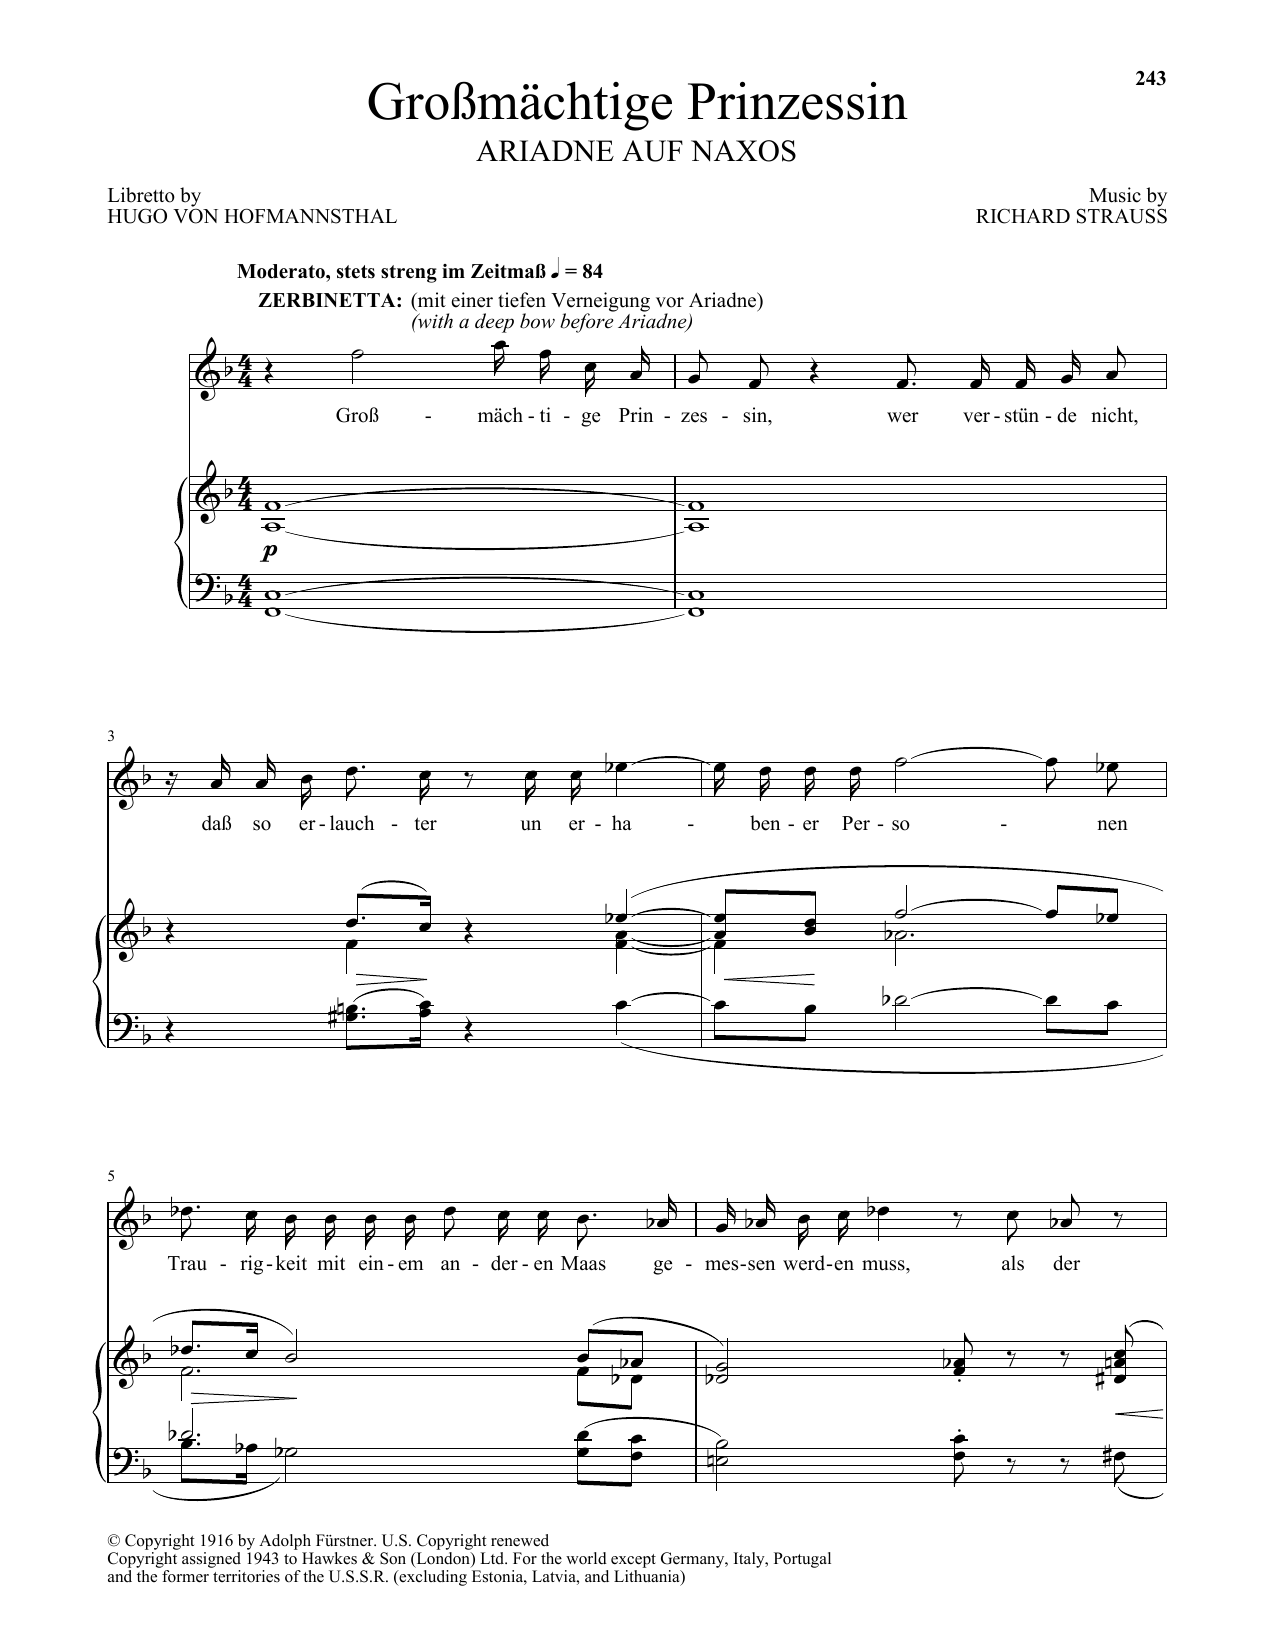 Richard Strauss Grossmatige Prinzessin (from Ariadne auf Naxos) sheet music notes and chords. Download Printable PDF.